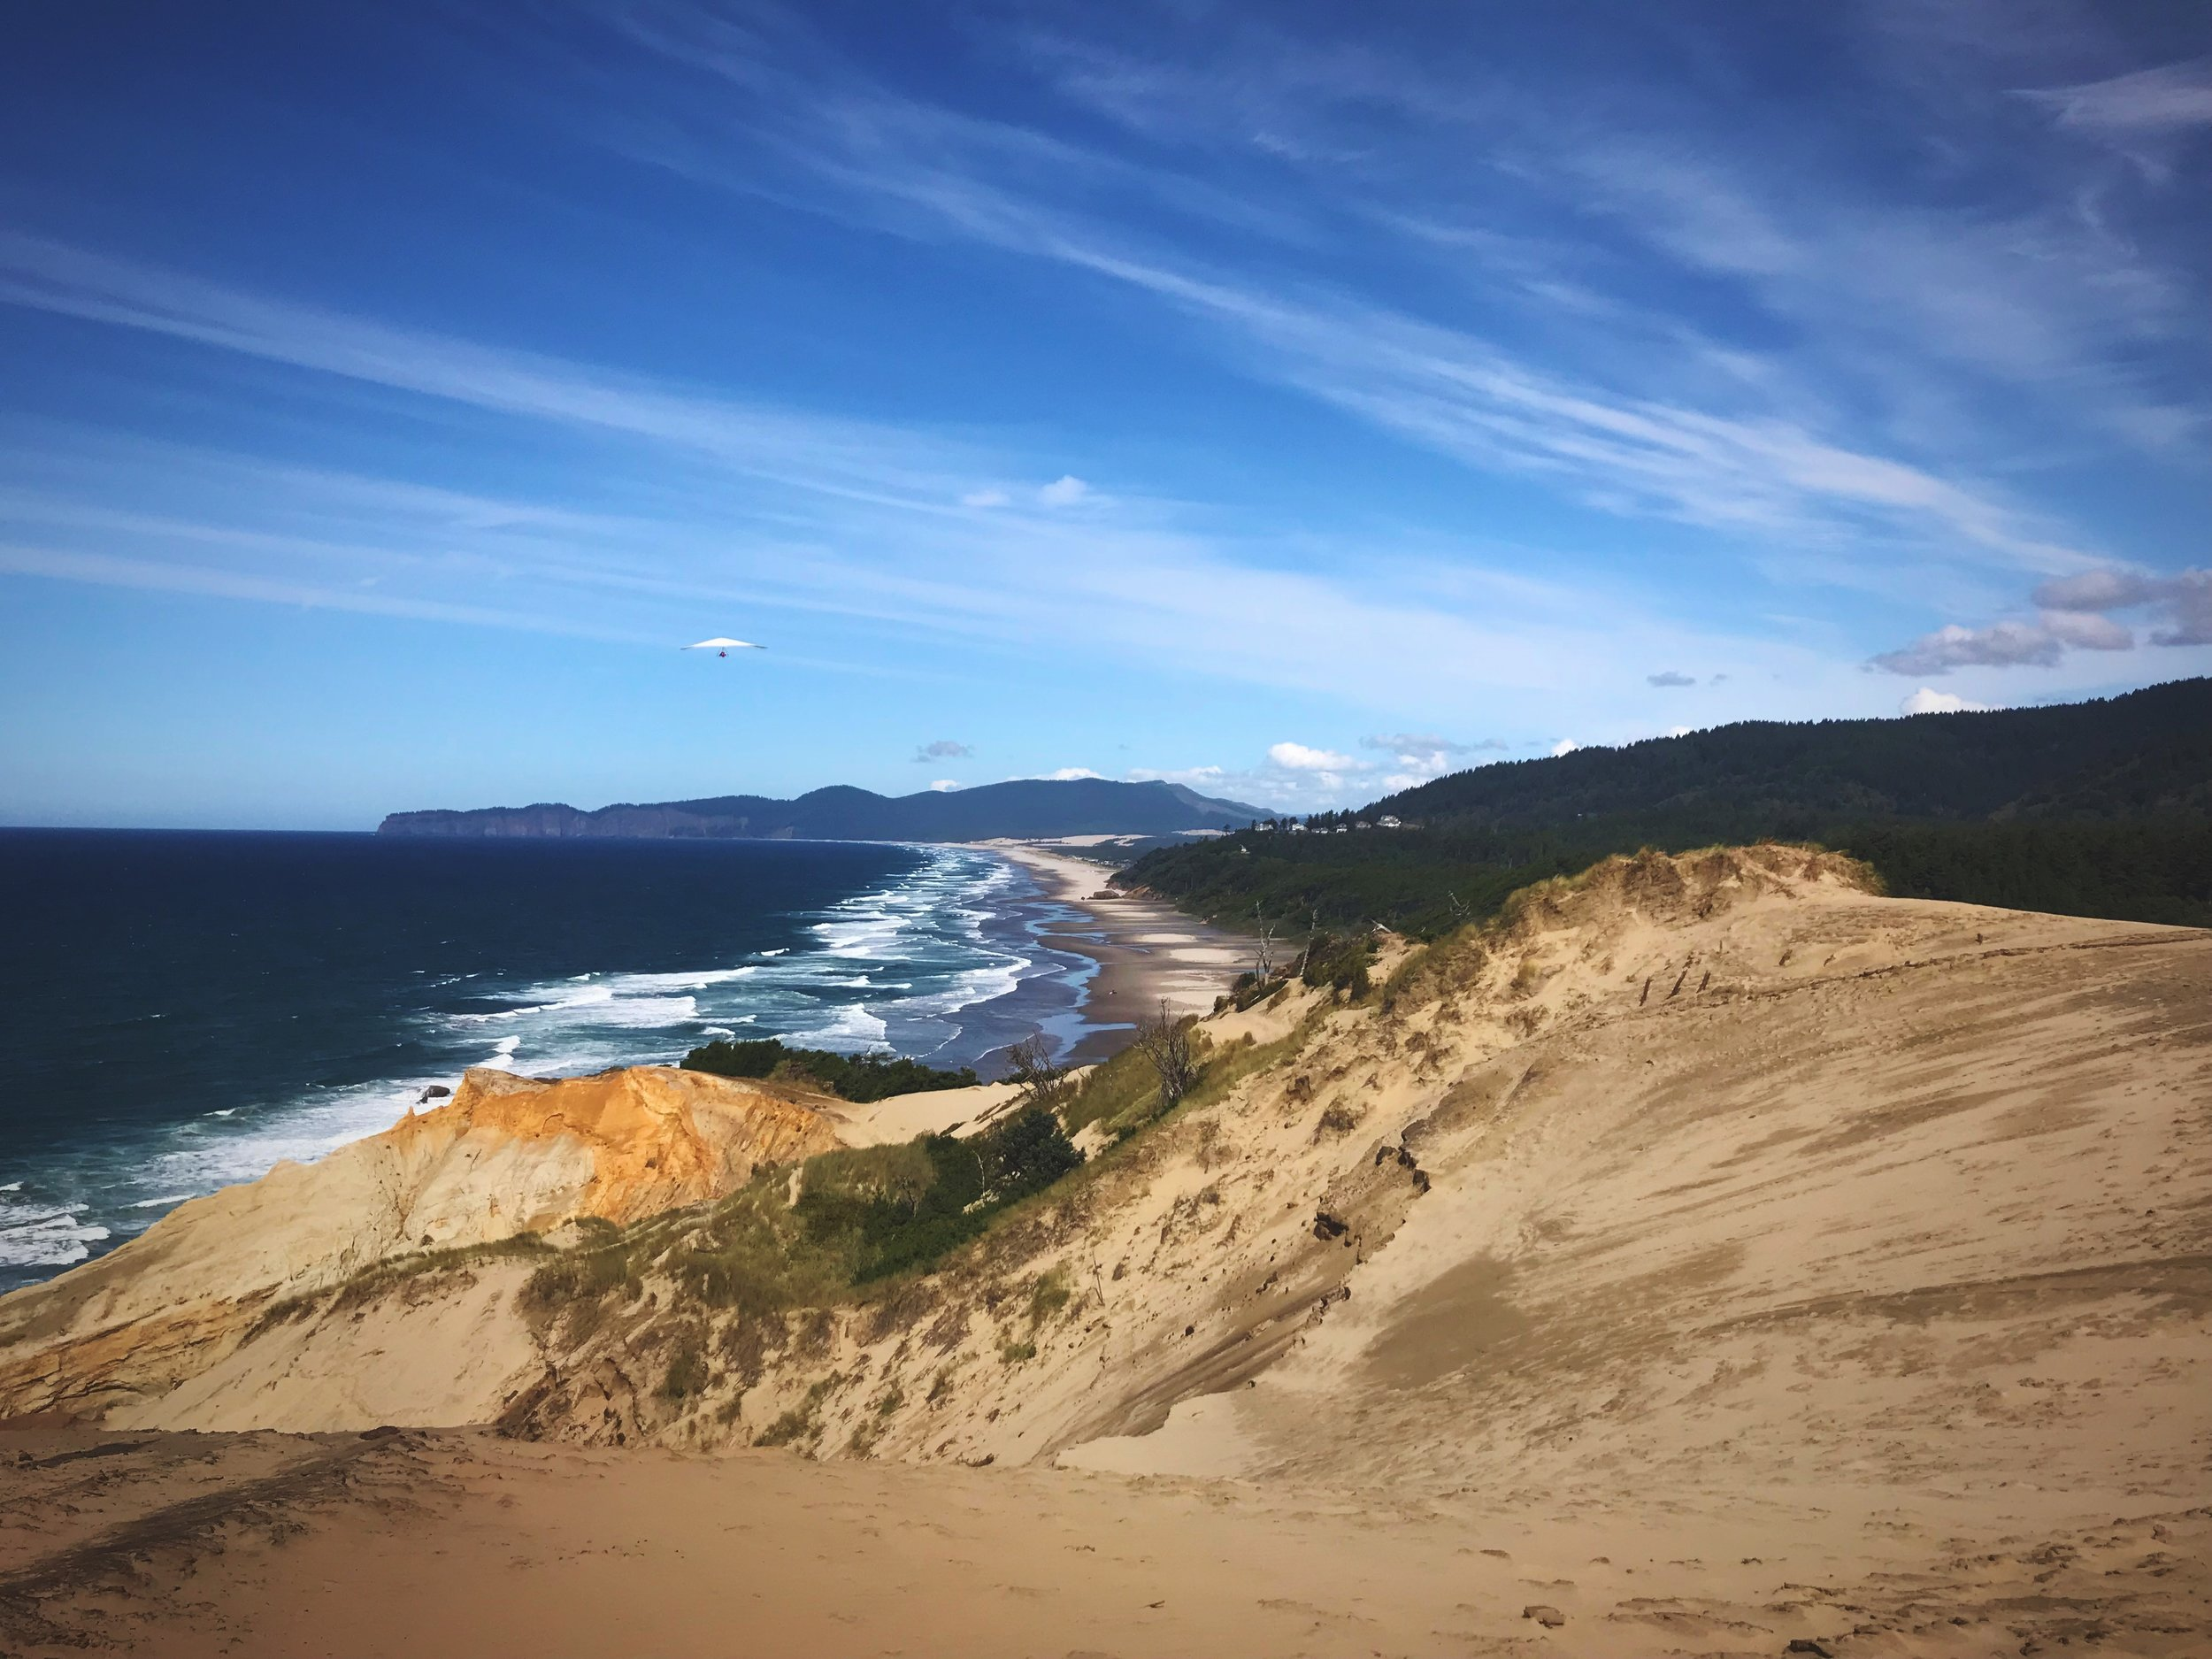 Looking to the North from Cape Kiwanda, over more sandstone and sand dunes.